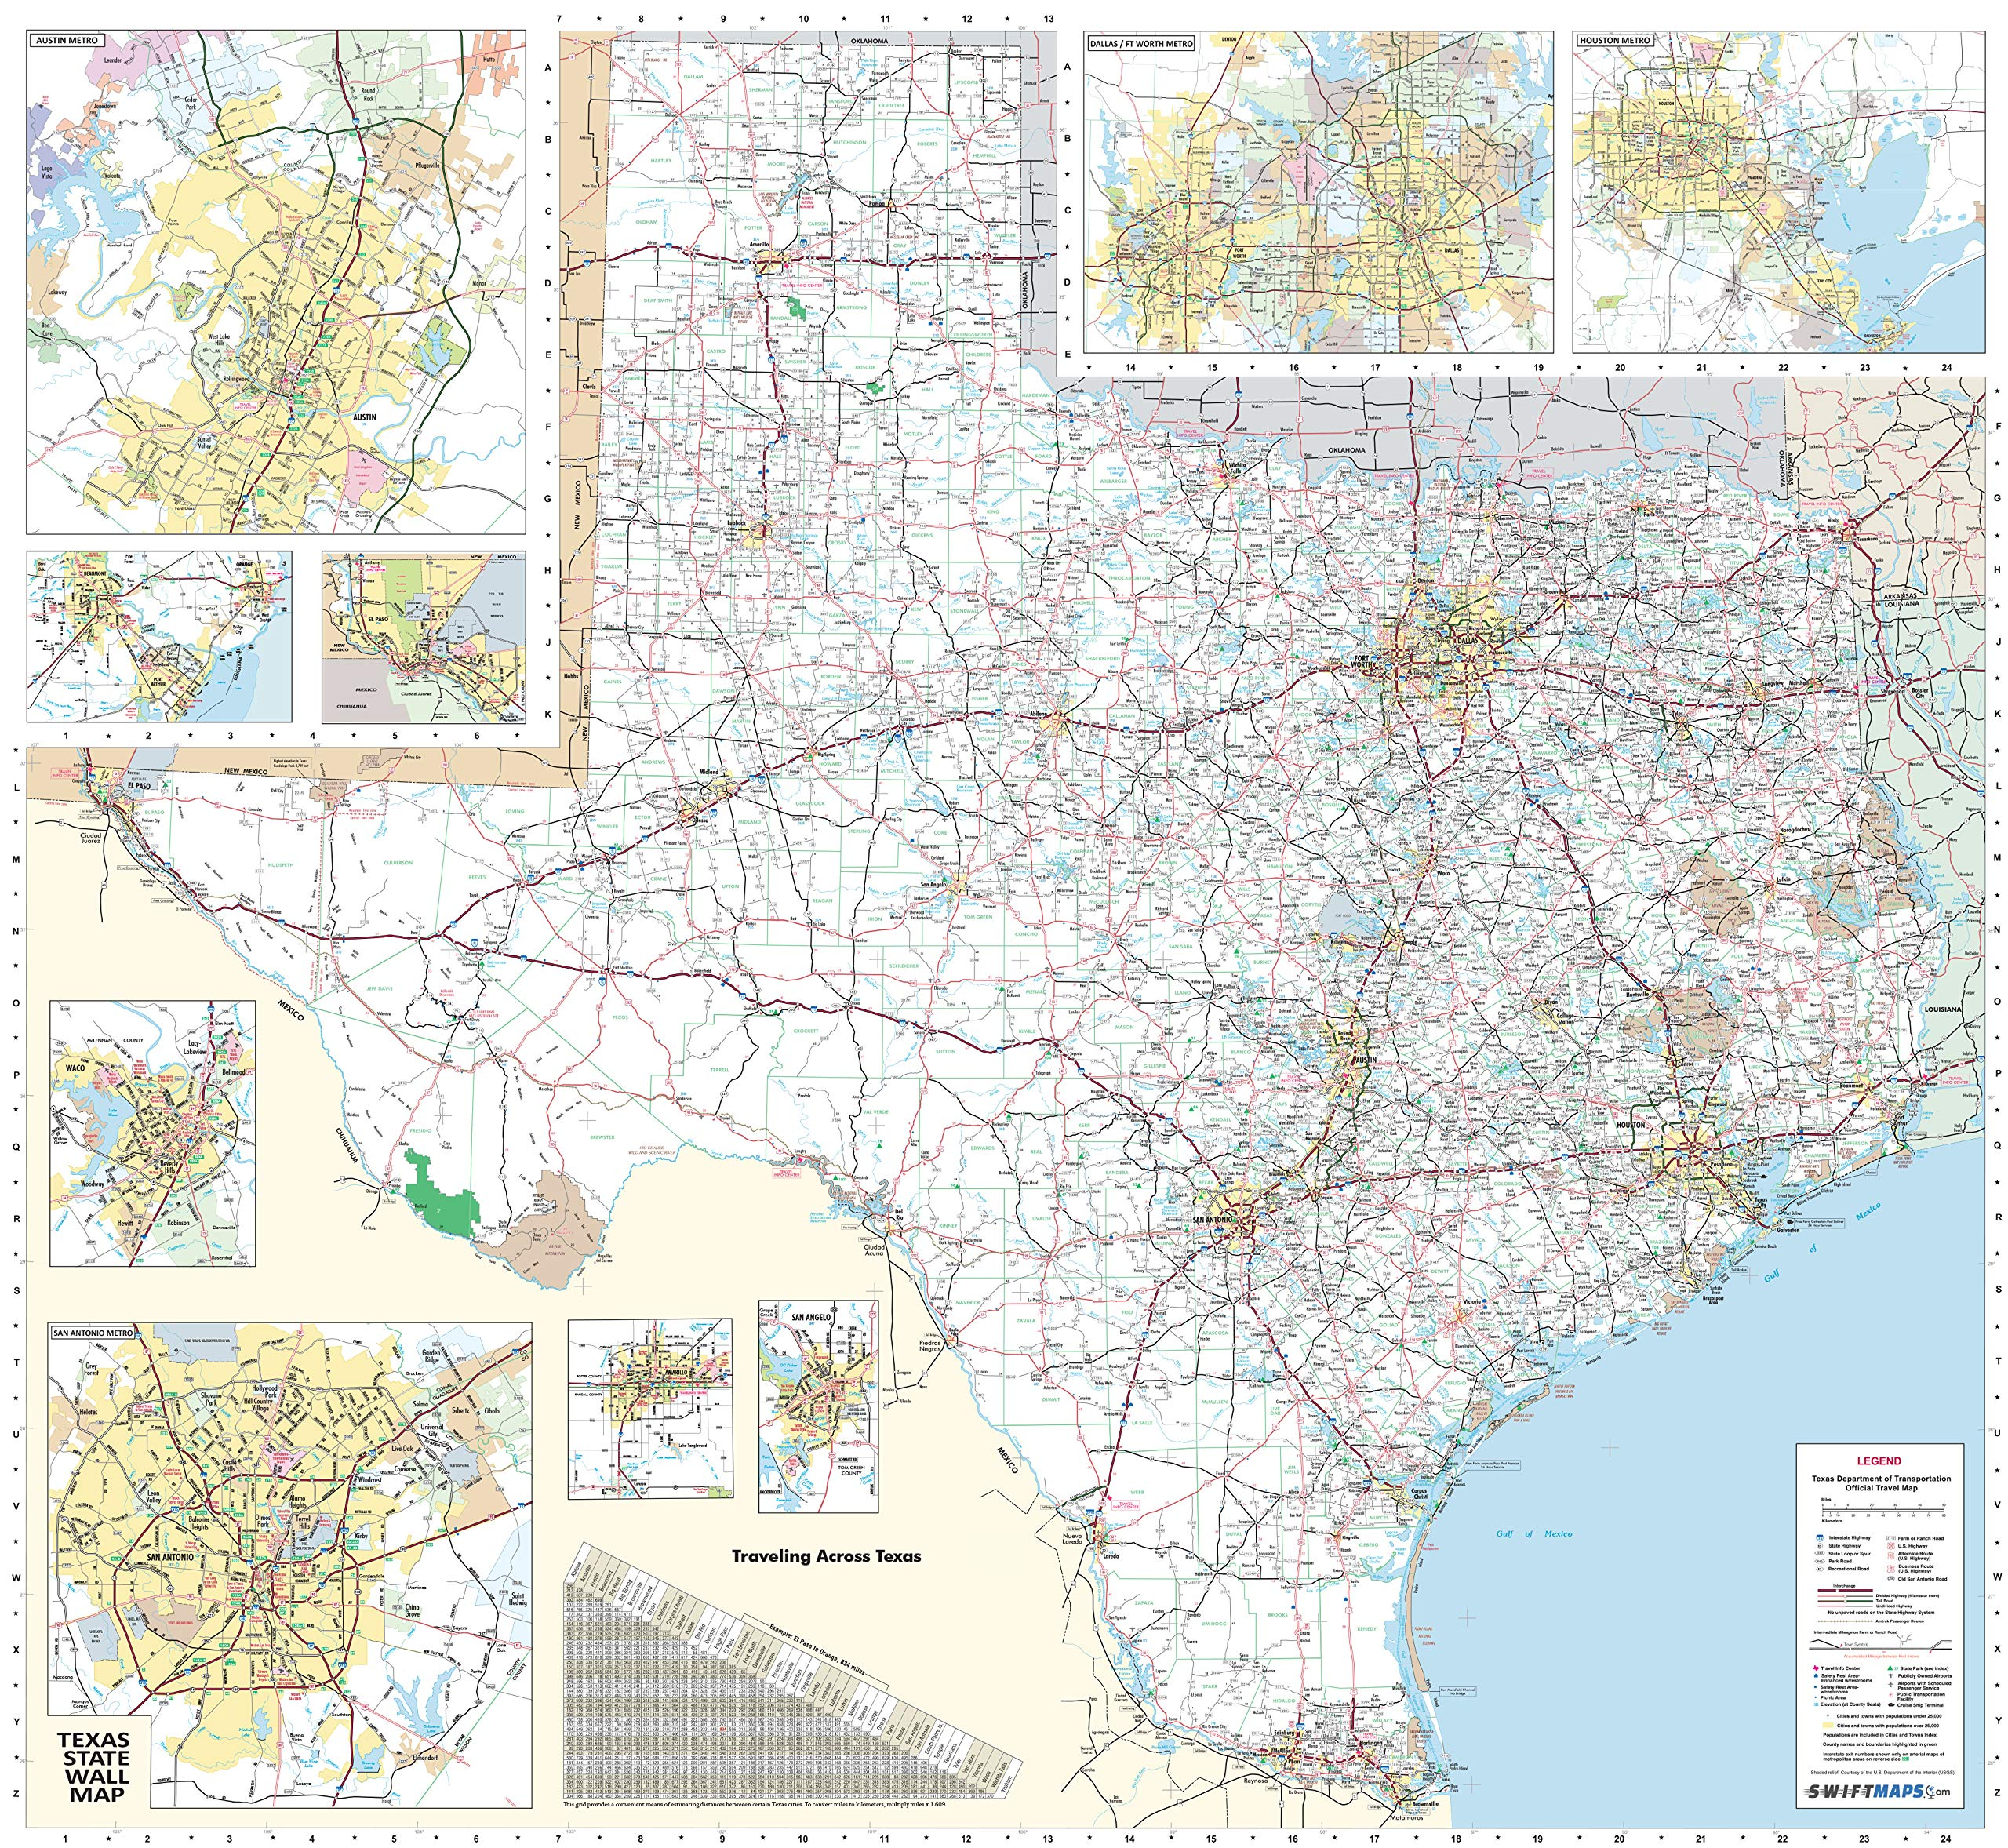 36x48 Texas State Official Executive Laminated Wall Map by Swiftmaps.com